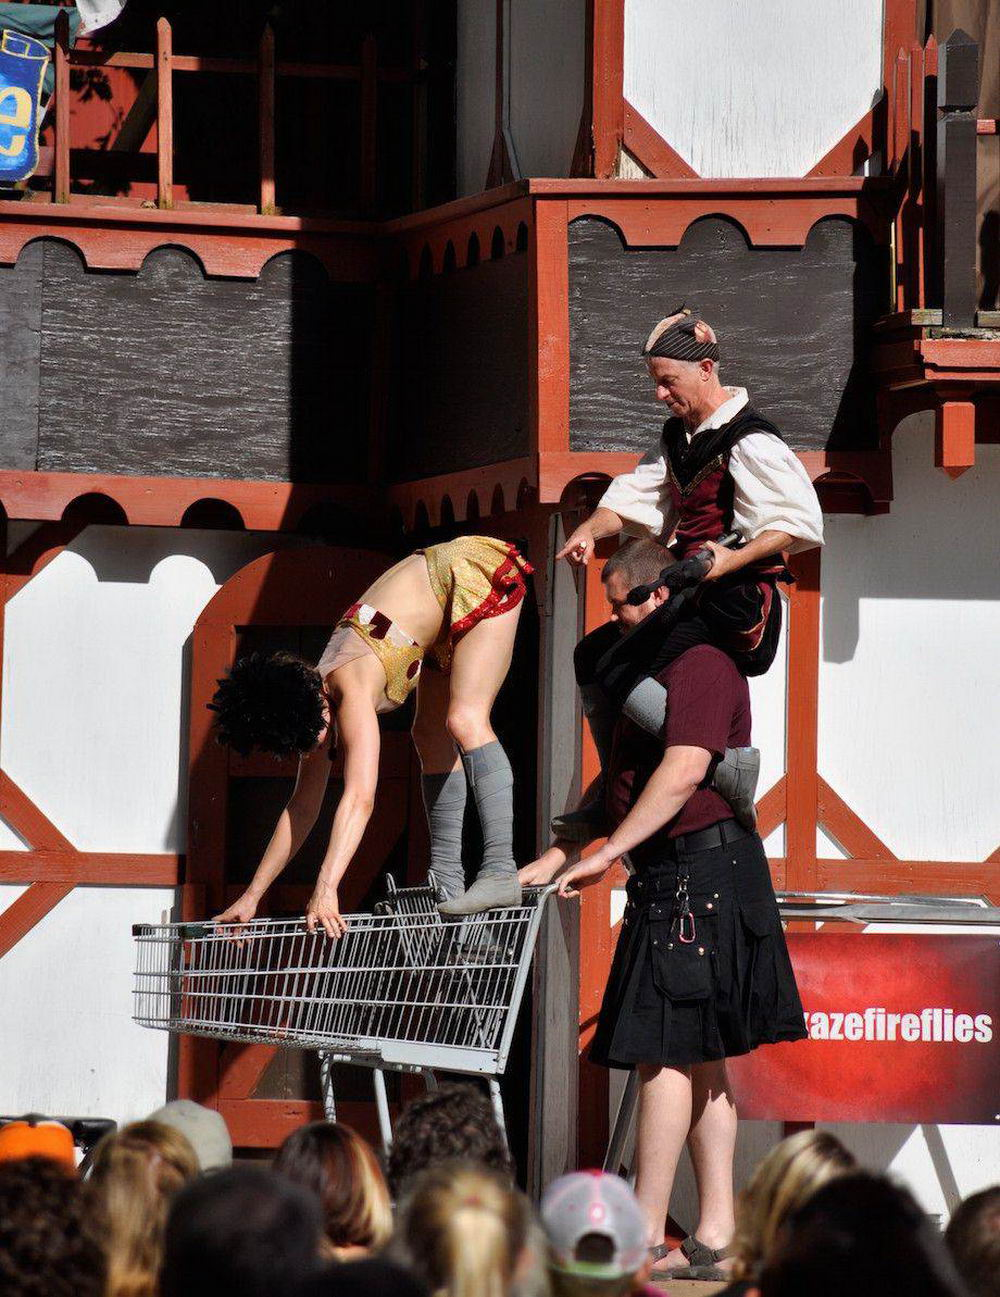 Most Embarrassing Moments Caught On Camera (39 Photos)